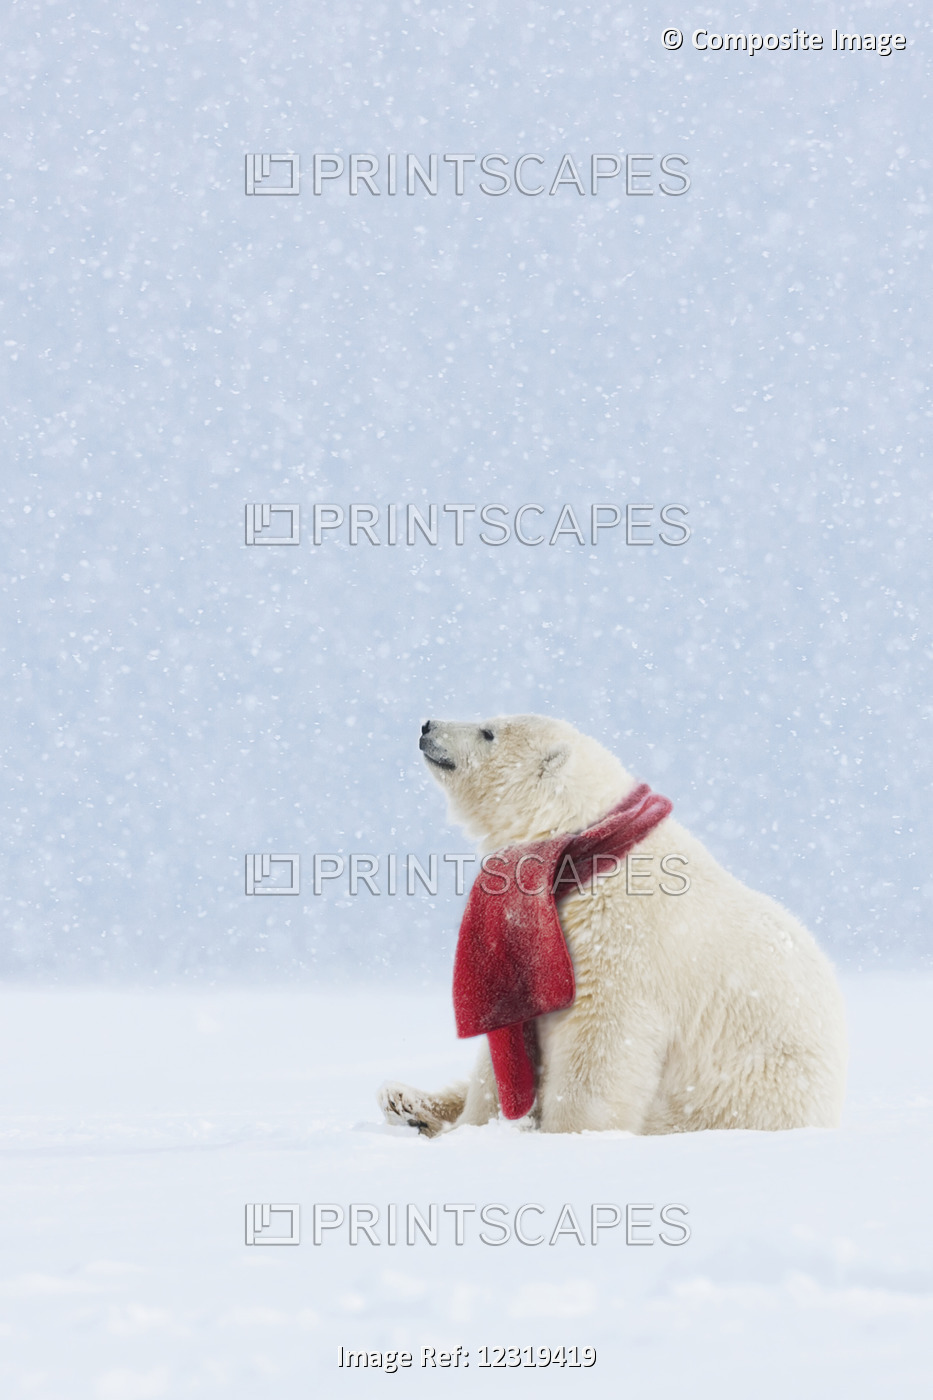 Composite: Polar Bear With Red Scarf Sitting In A Snowstorm